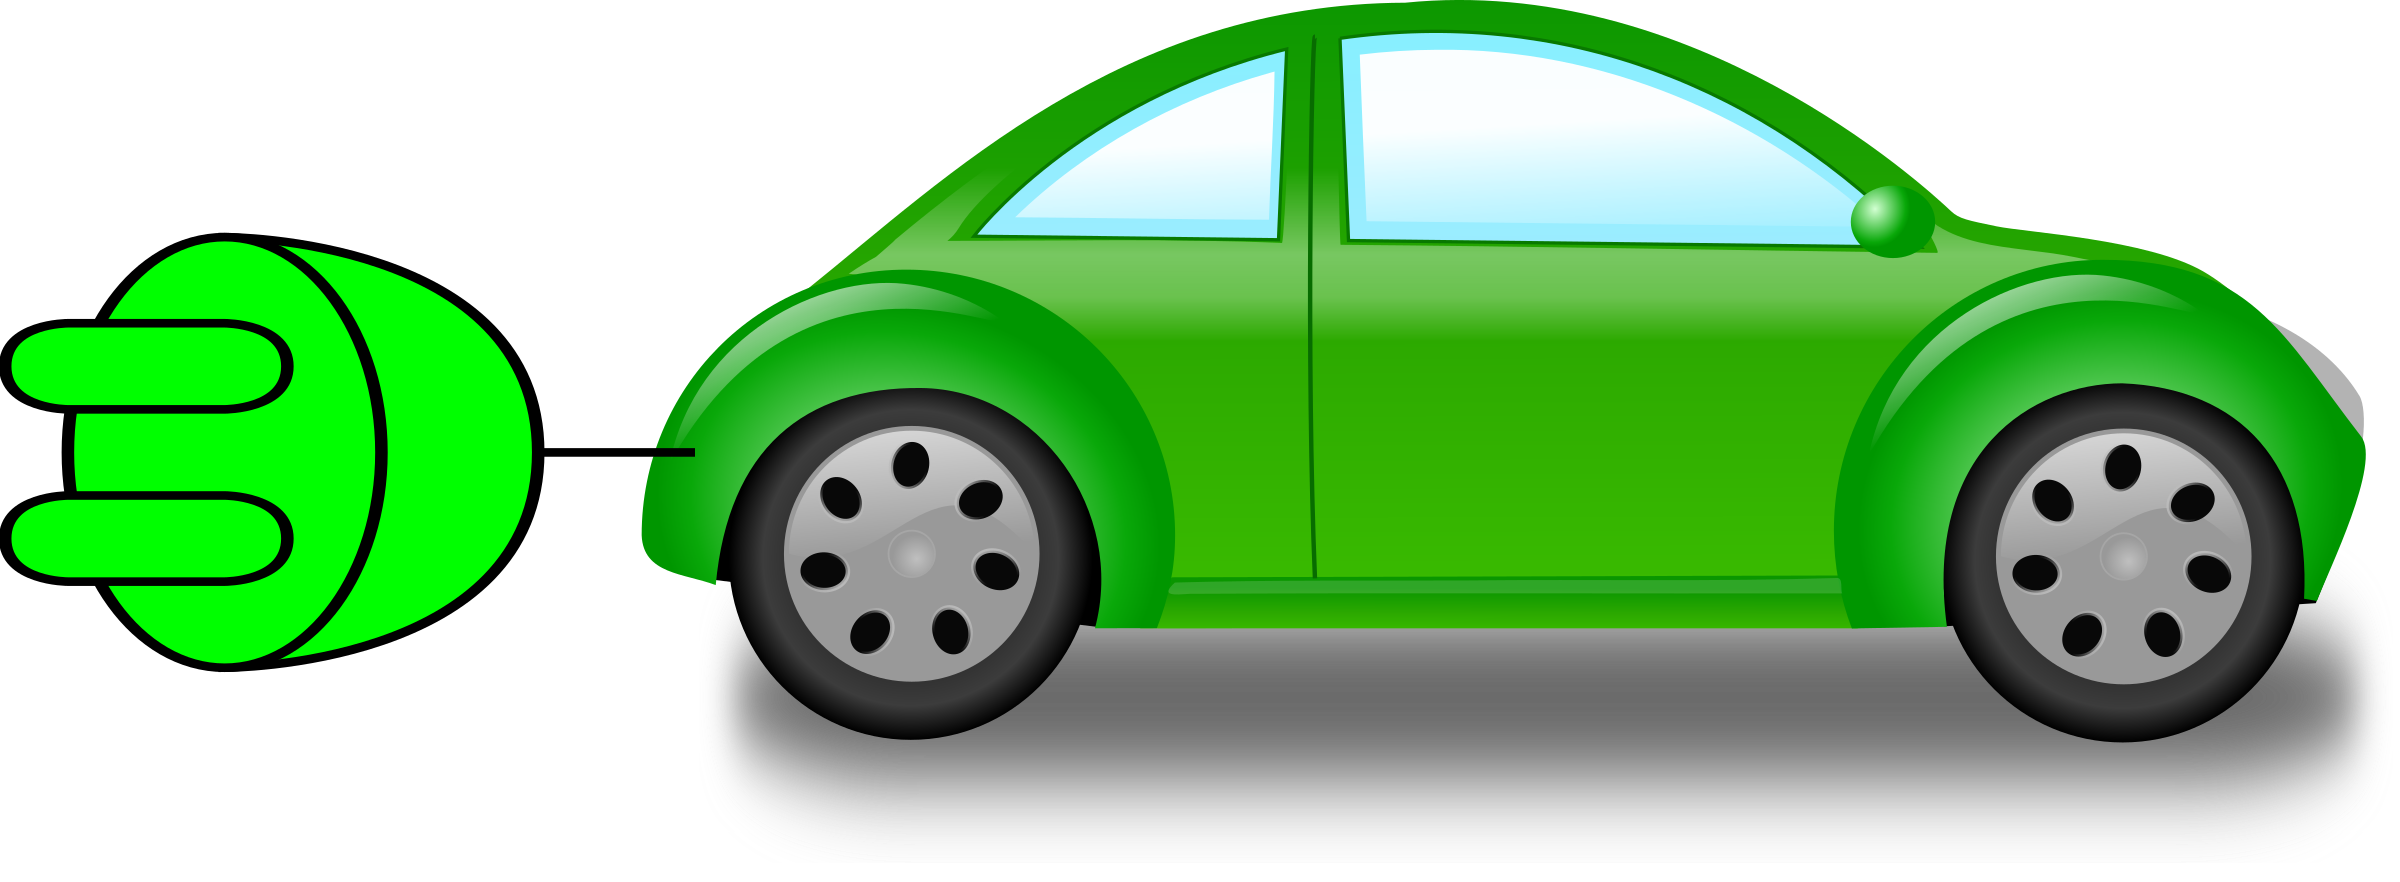 Electric car clipart jpg library download Electric cars clipart - Clipground jpg library download